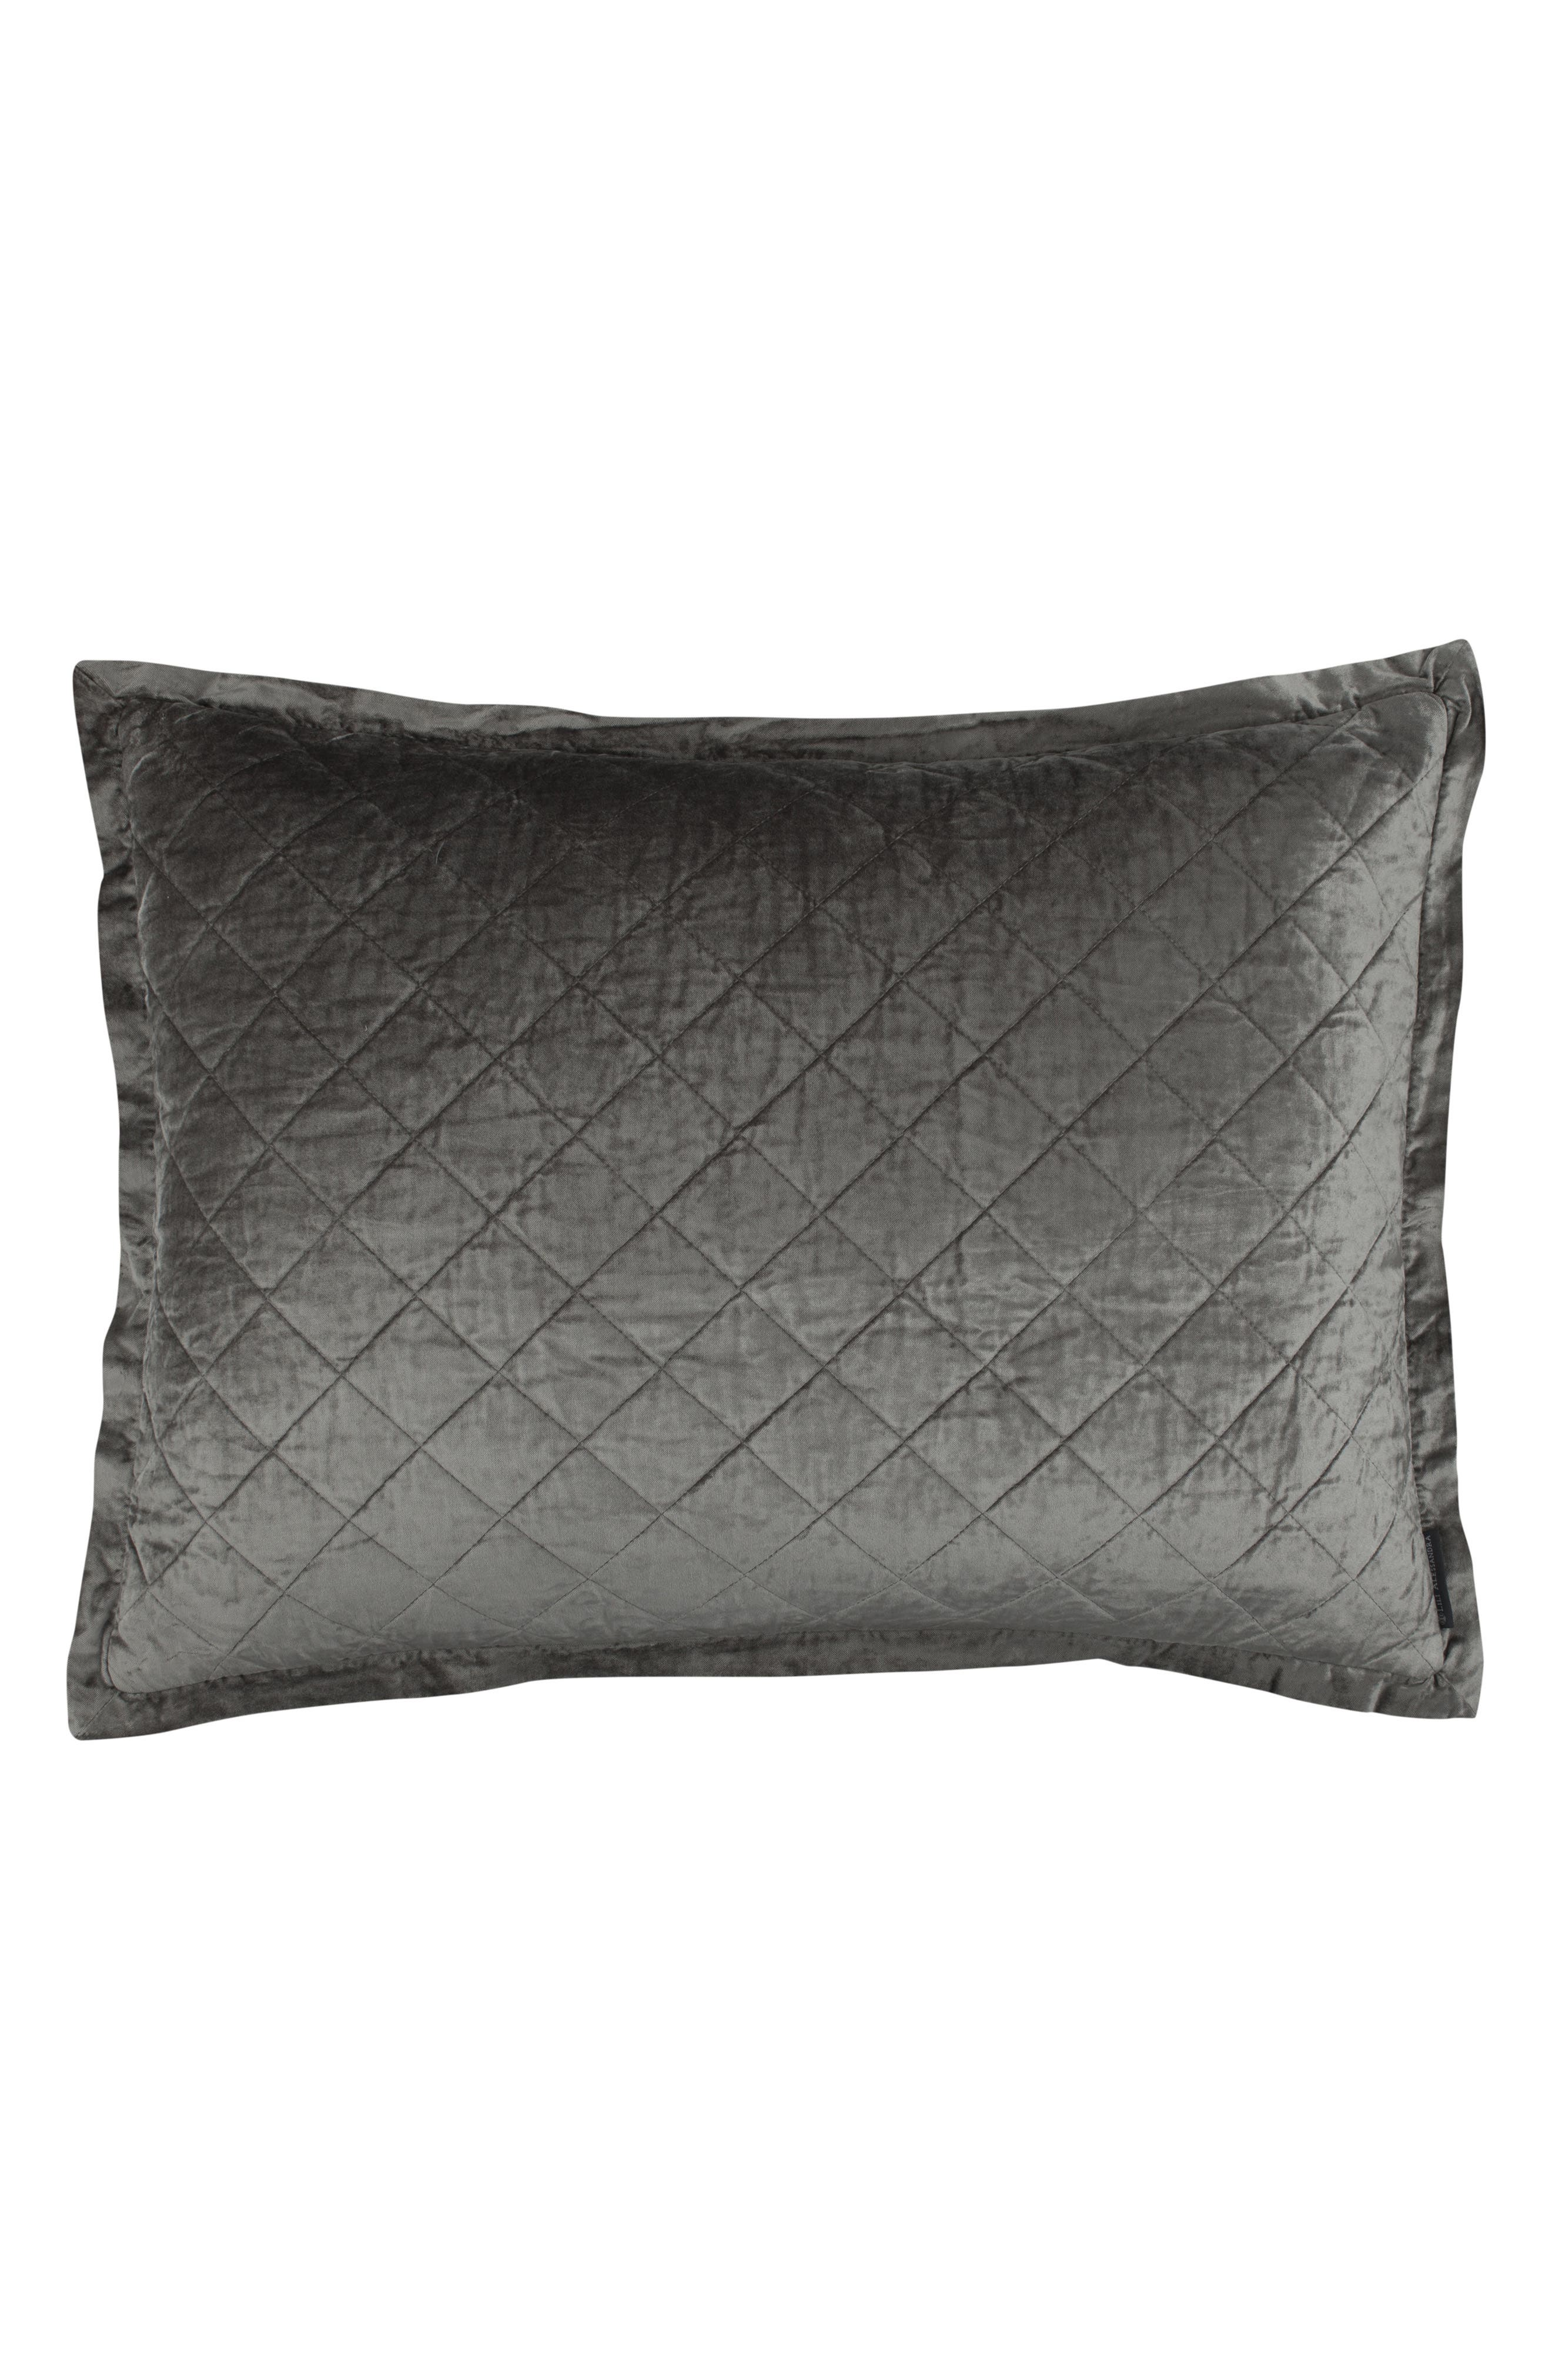 Chloe Quilted Sham,                             Main thumbnail 1, color,                             020